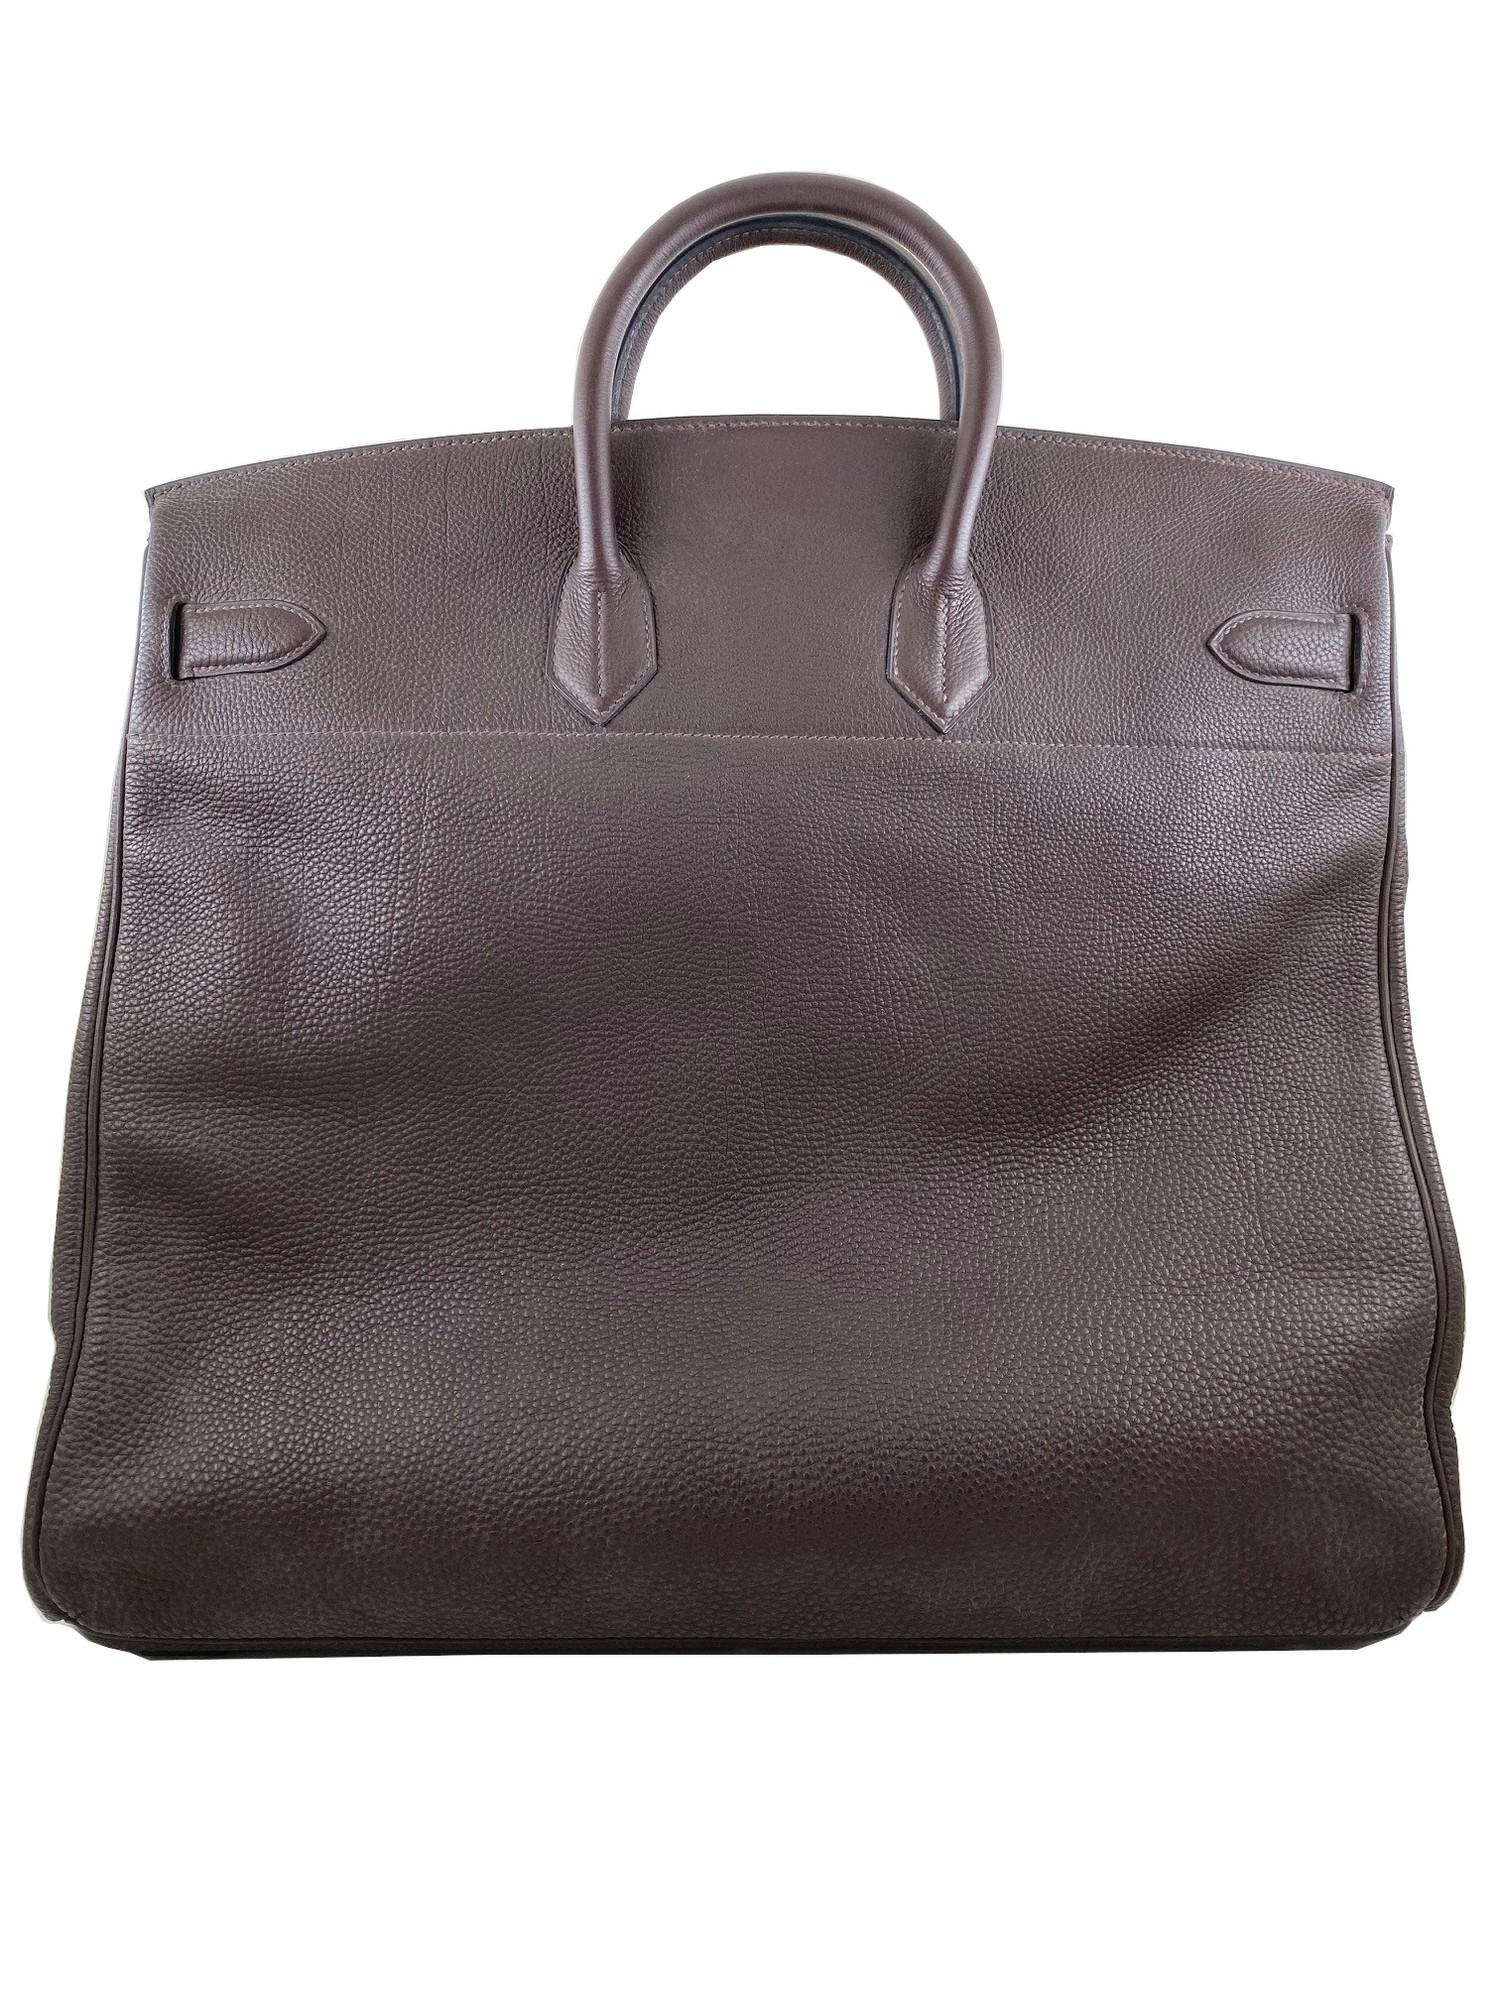 A Brown Hermes Birkin 50cm Haut A Courroies in clemence leather with gold hardware. Includes - Image 5 of 16